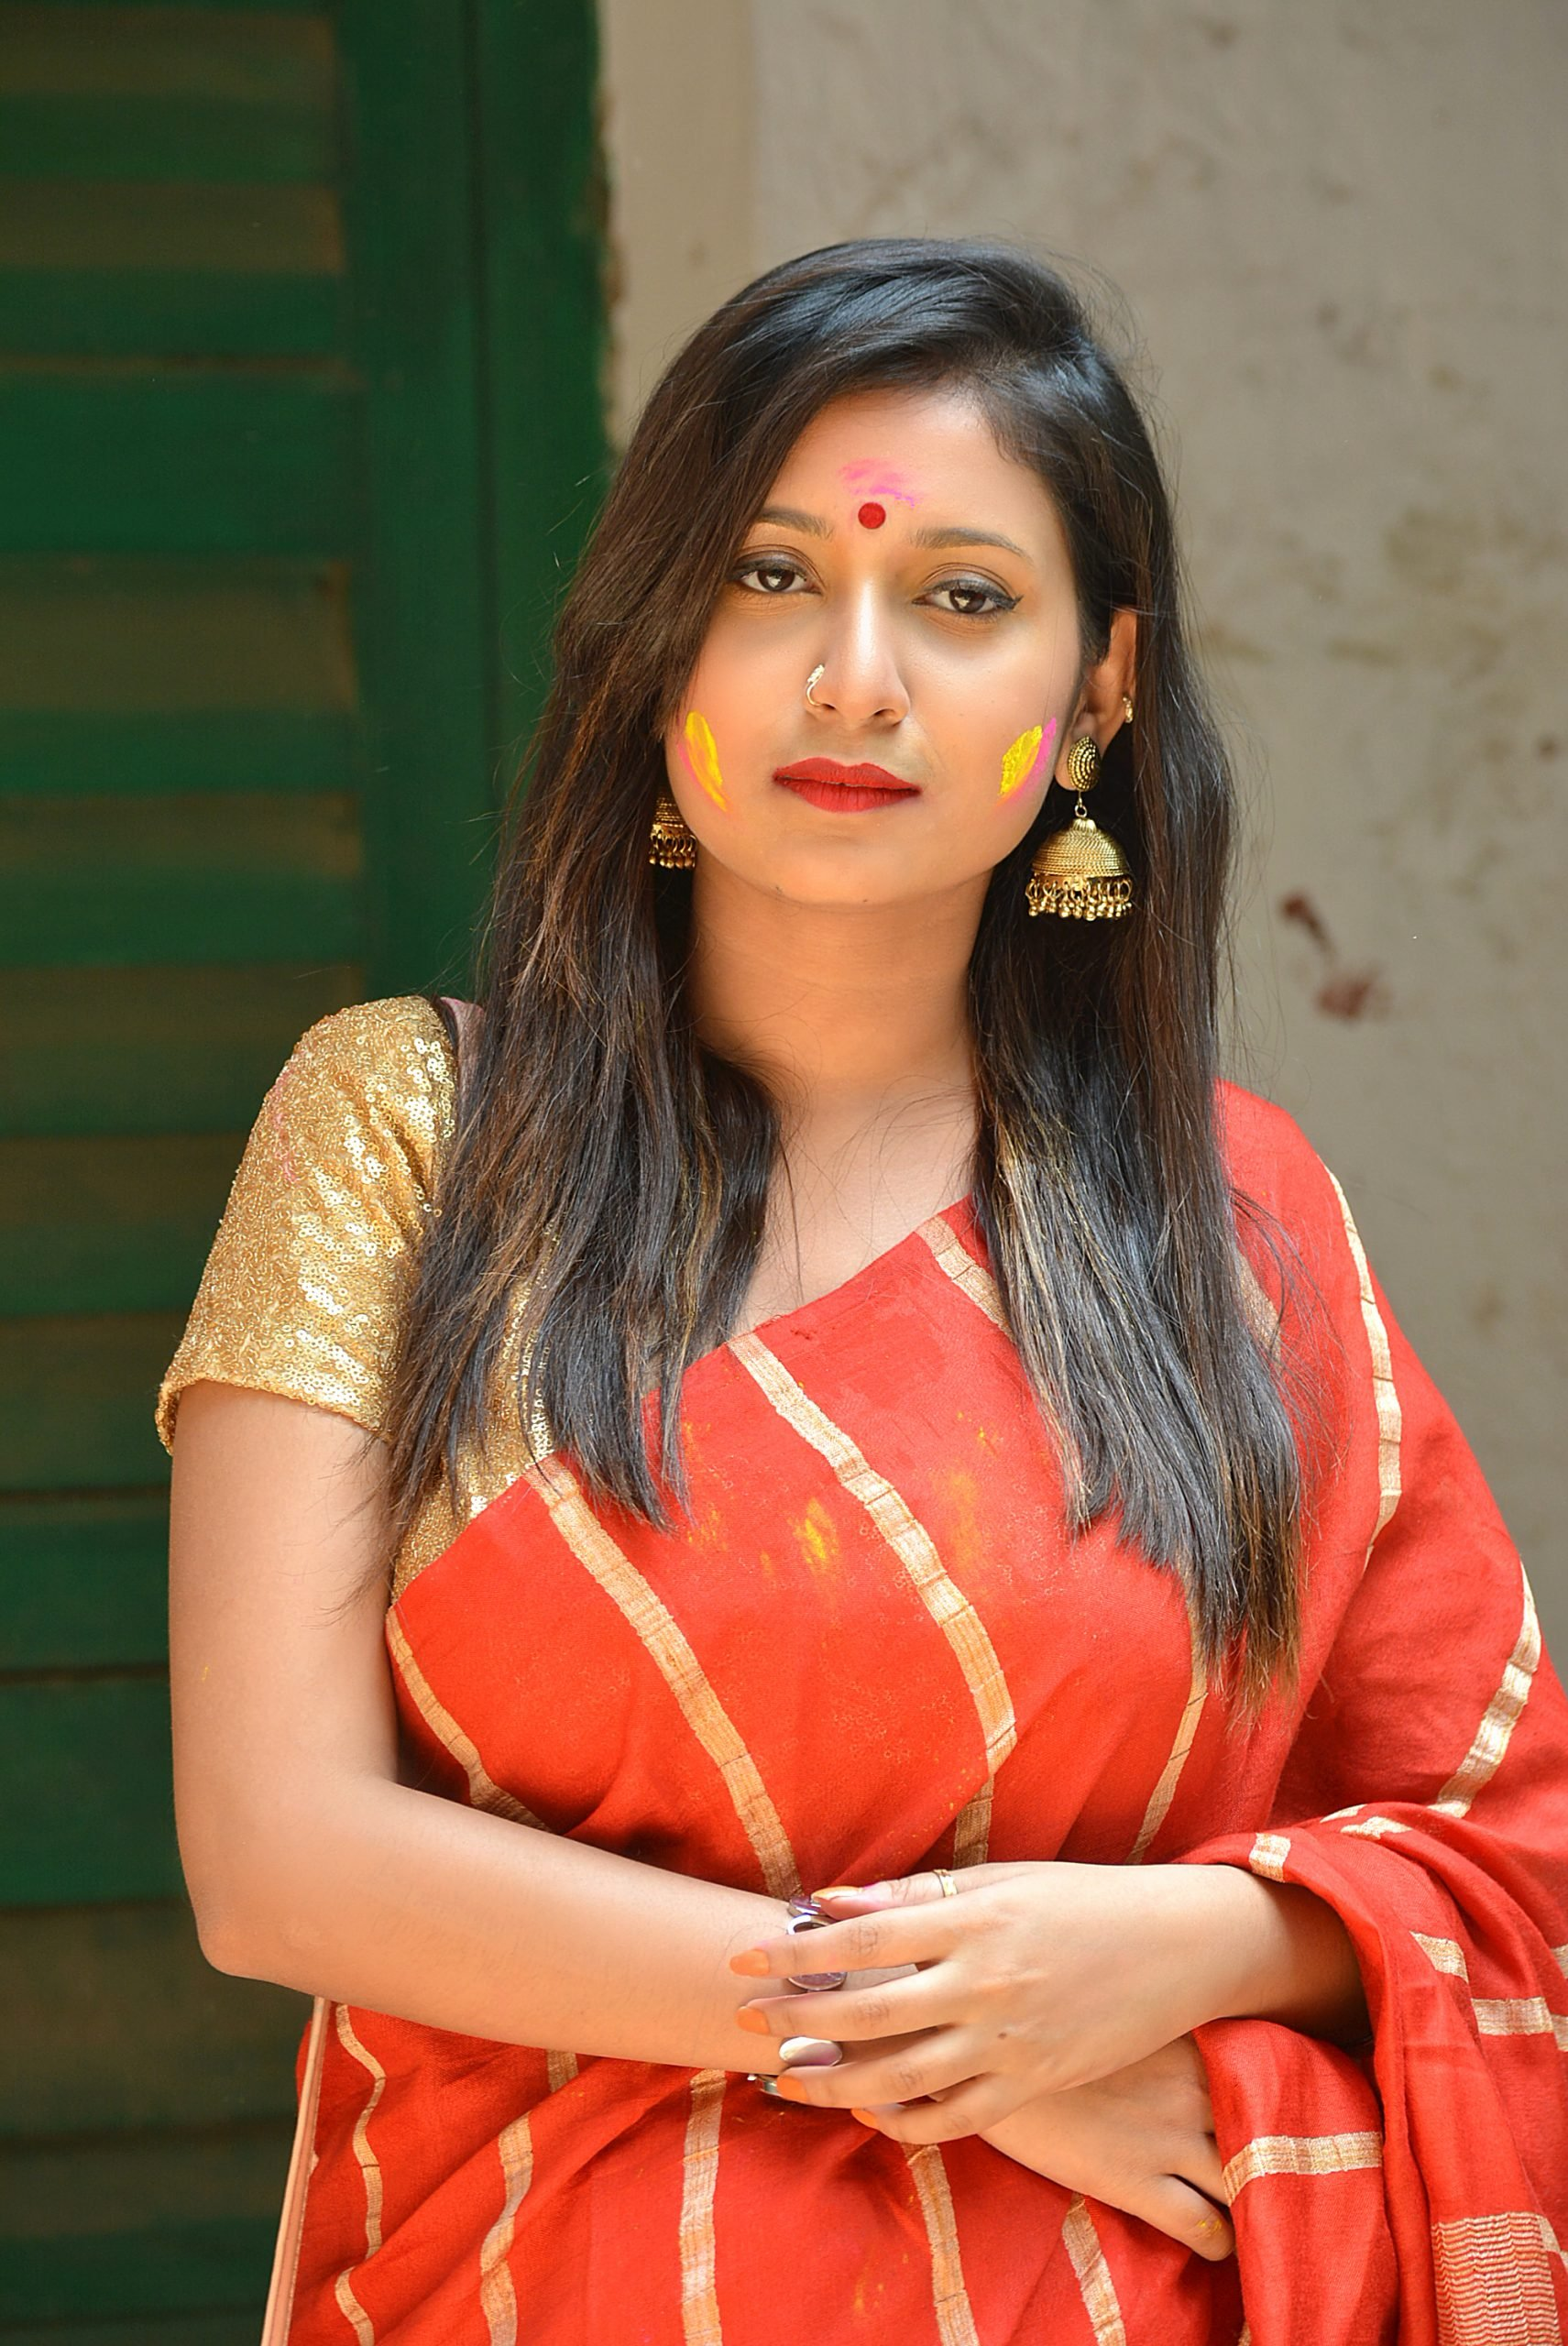 Beautiful girl posing in Saree